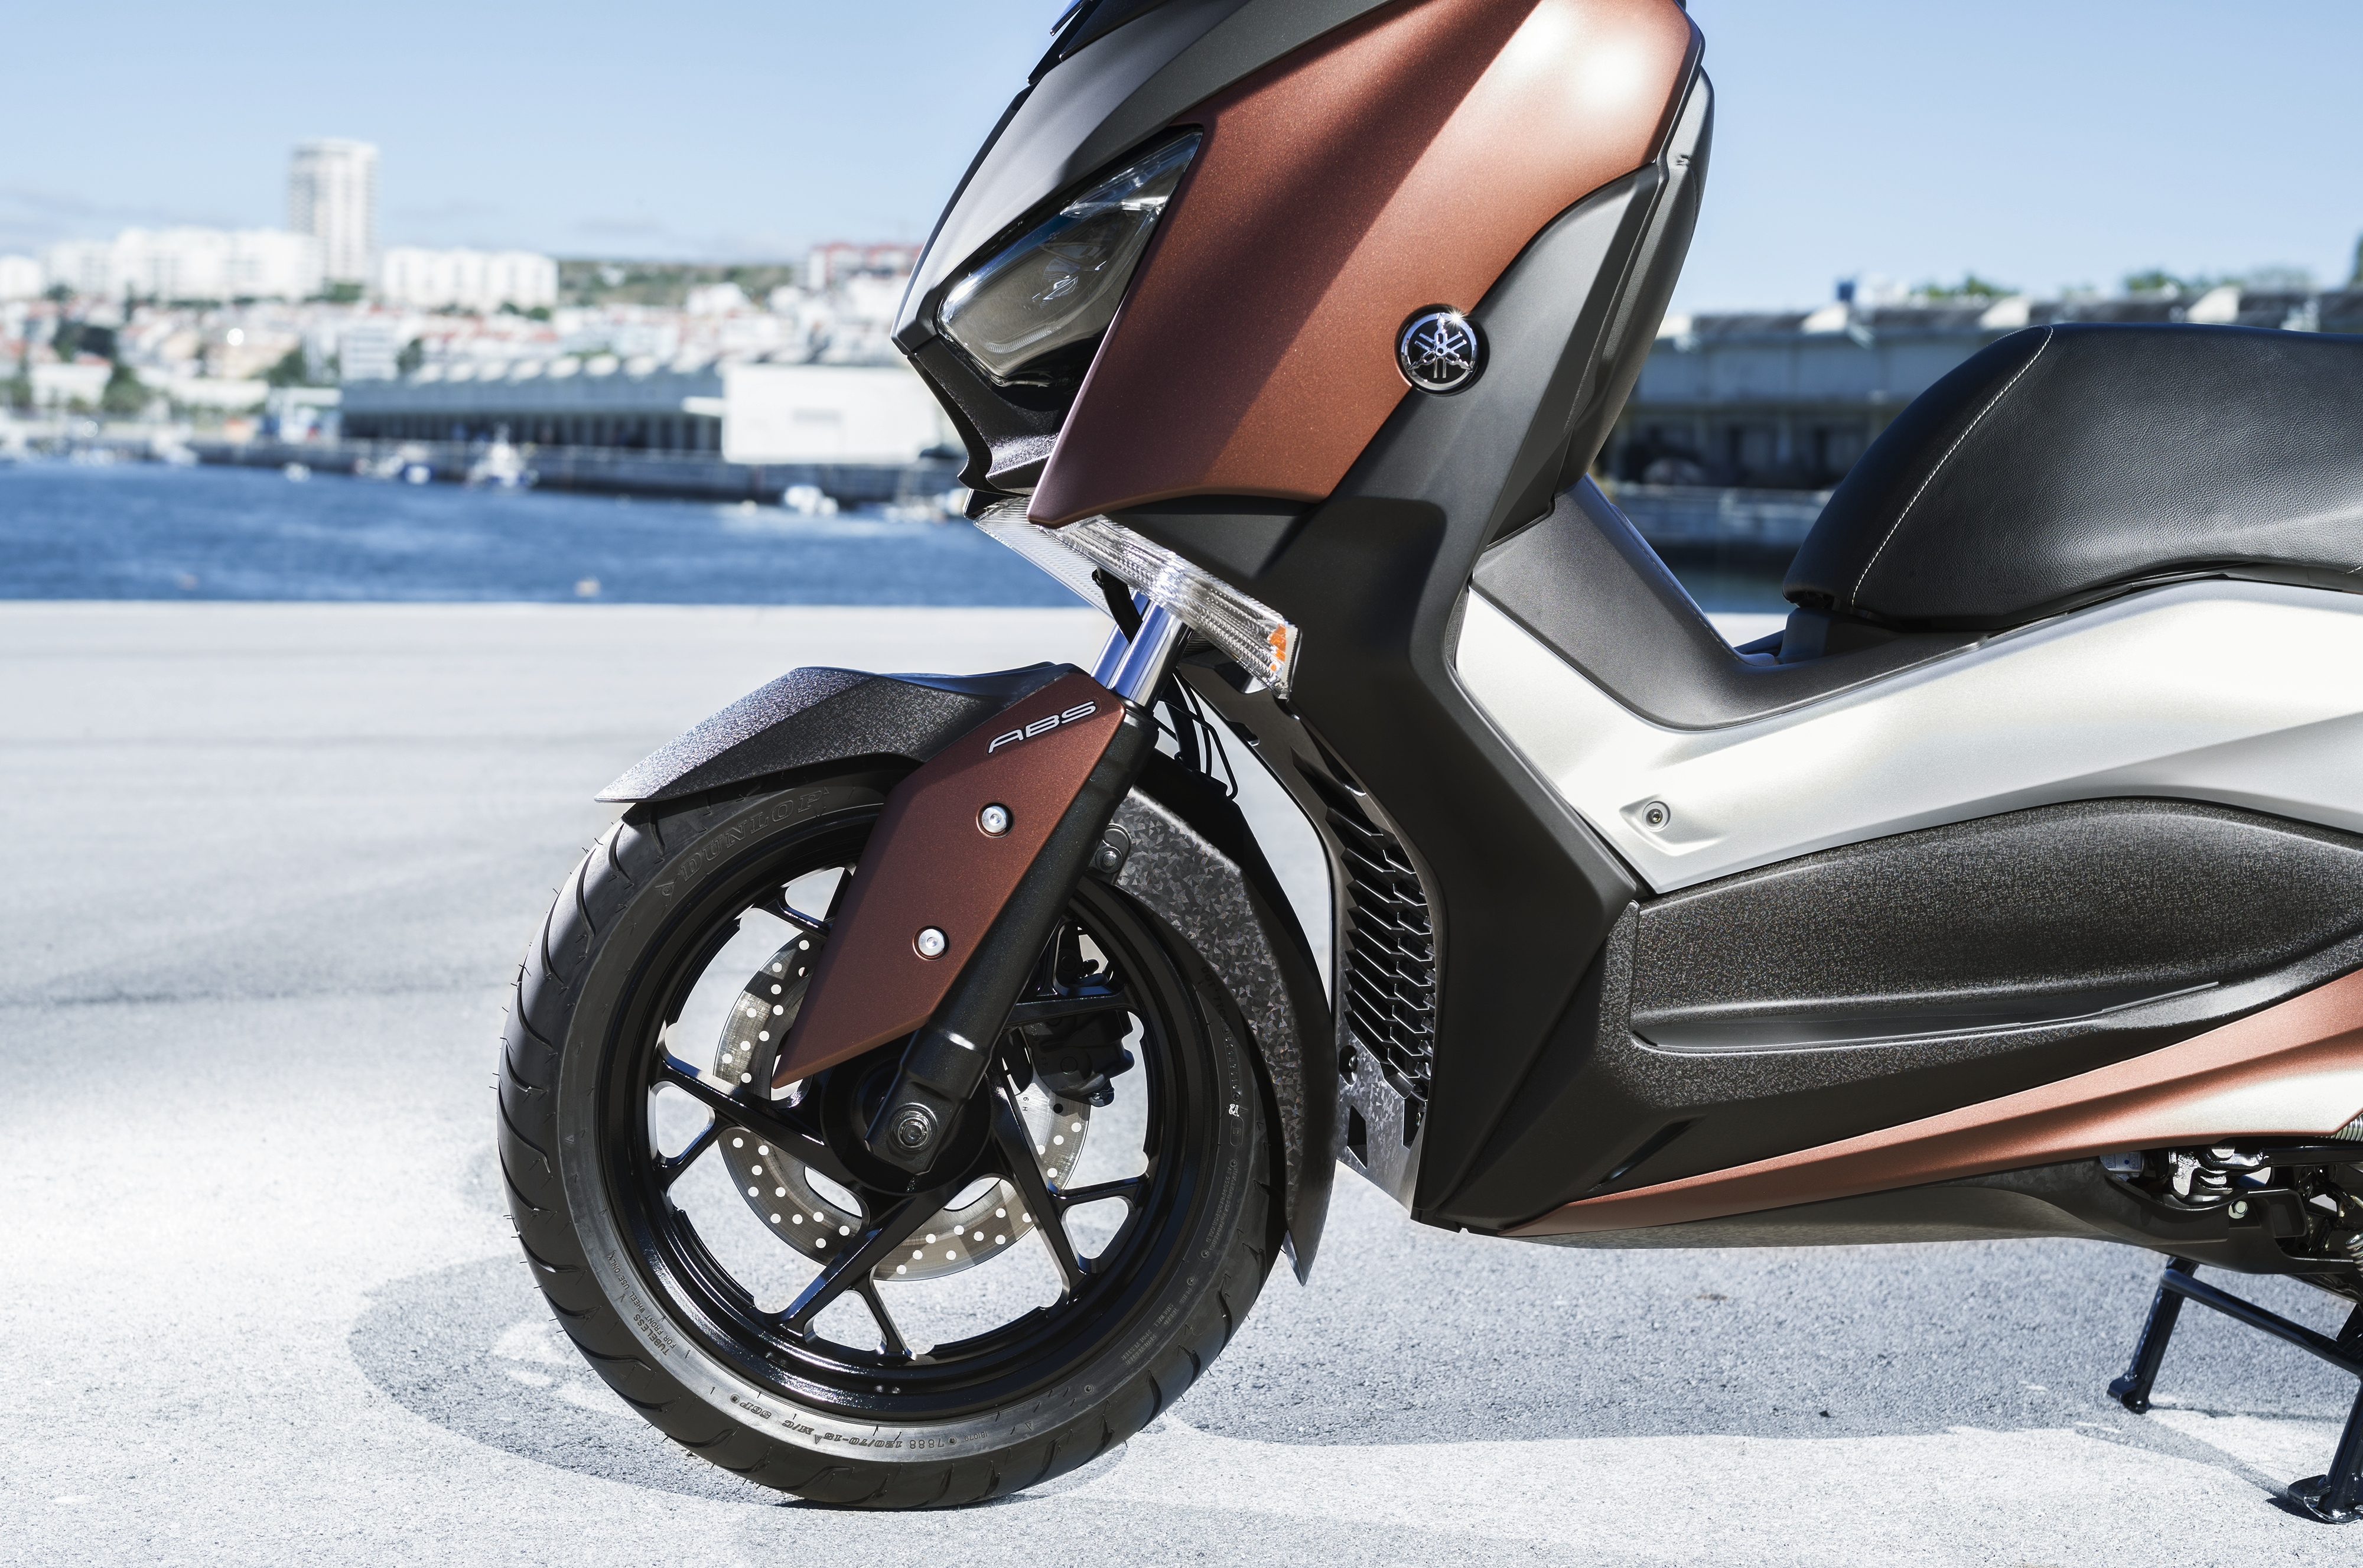 2017 yamaha x max 300 scooter launched in europe image 565673 for Yamaha xmax 300